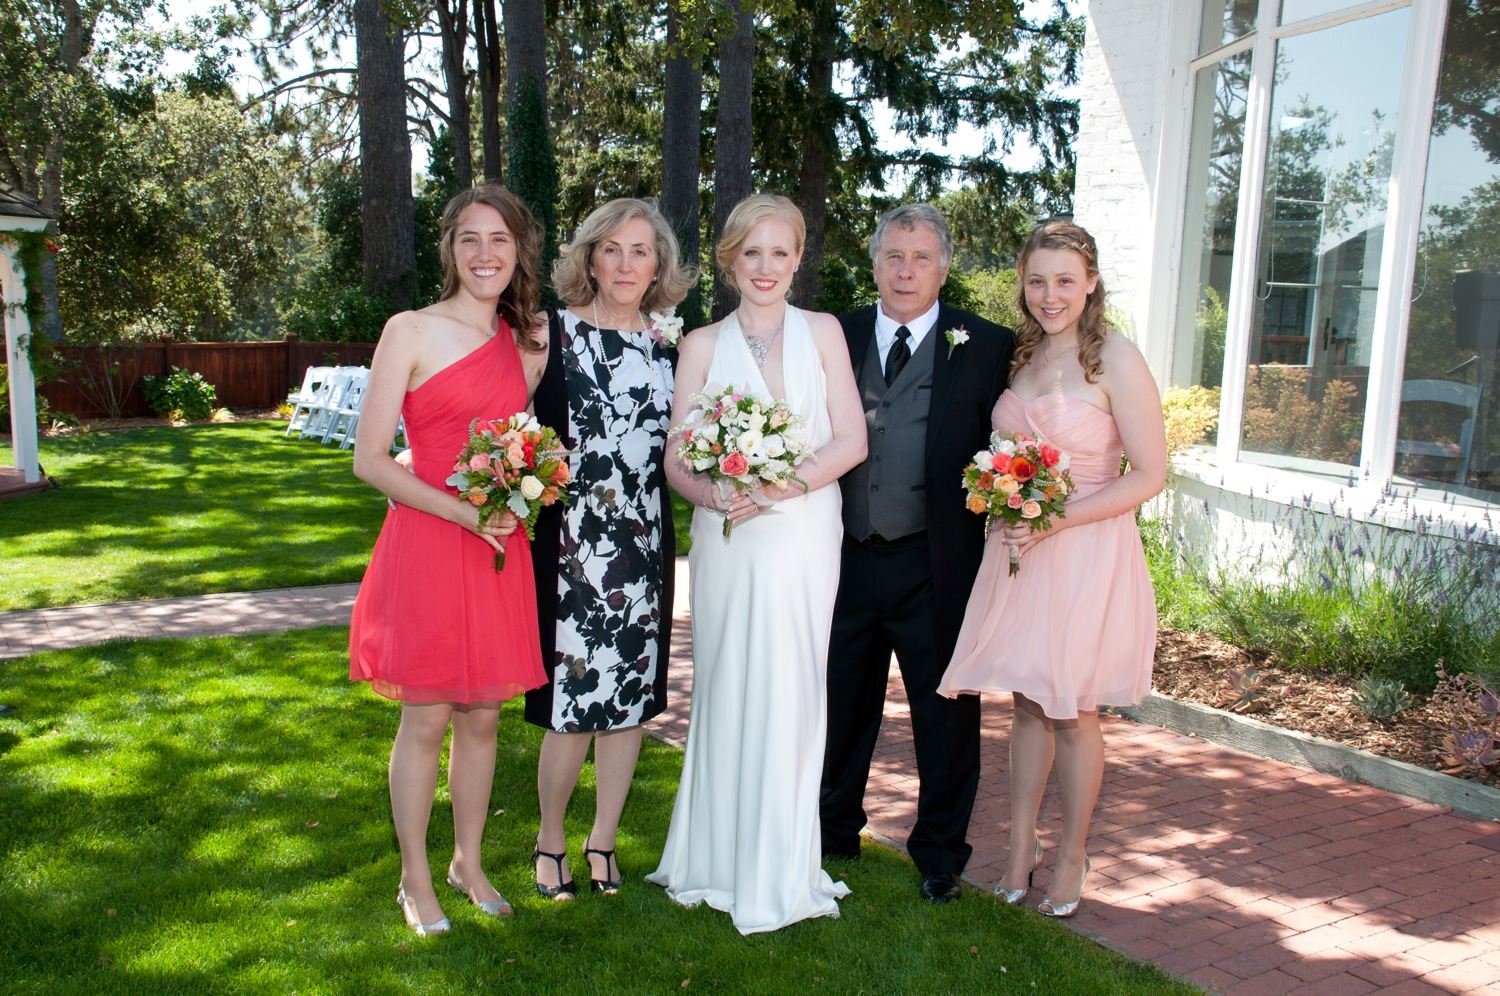 Christine, Susan, Elizabeth, Glen, and Kathryn.